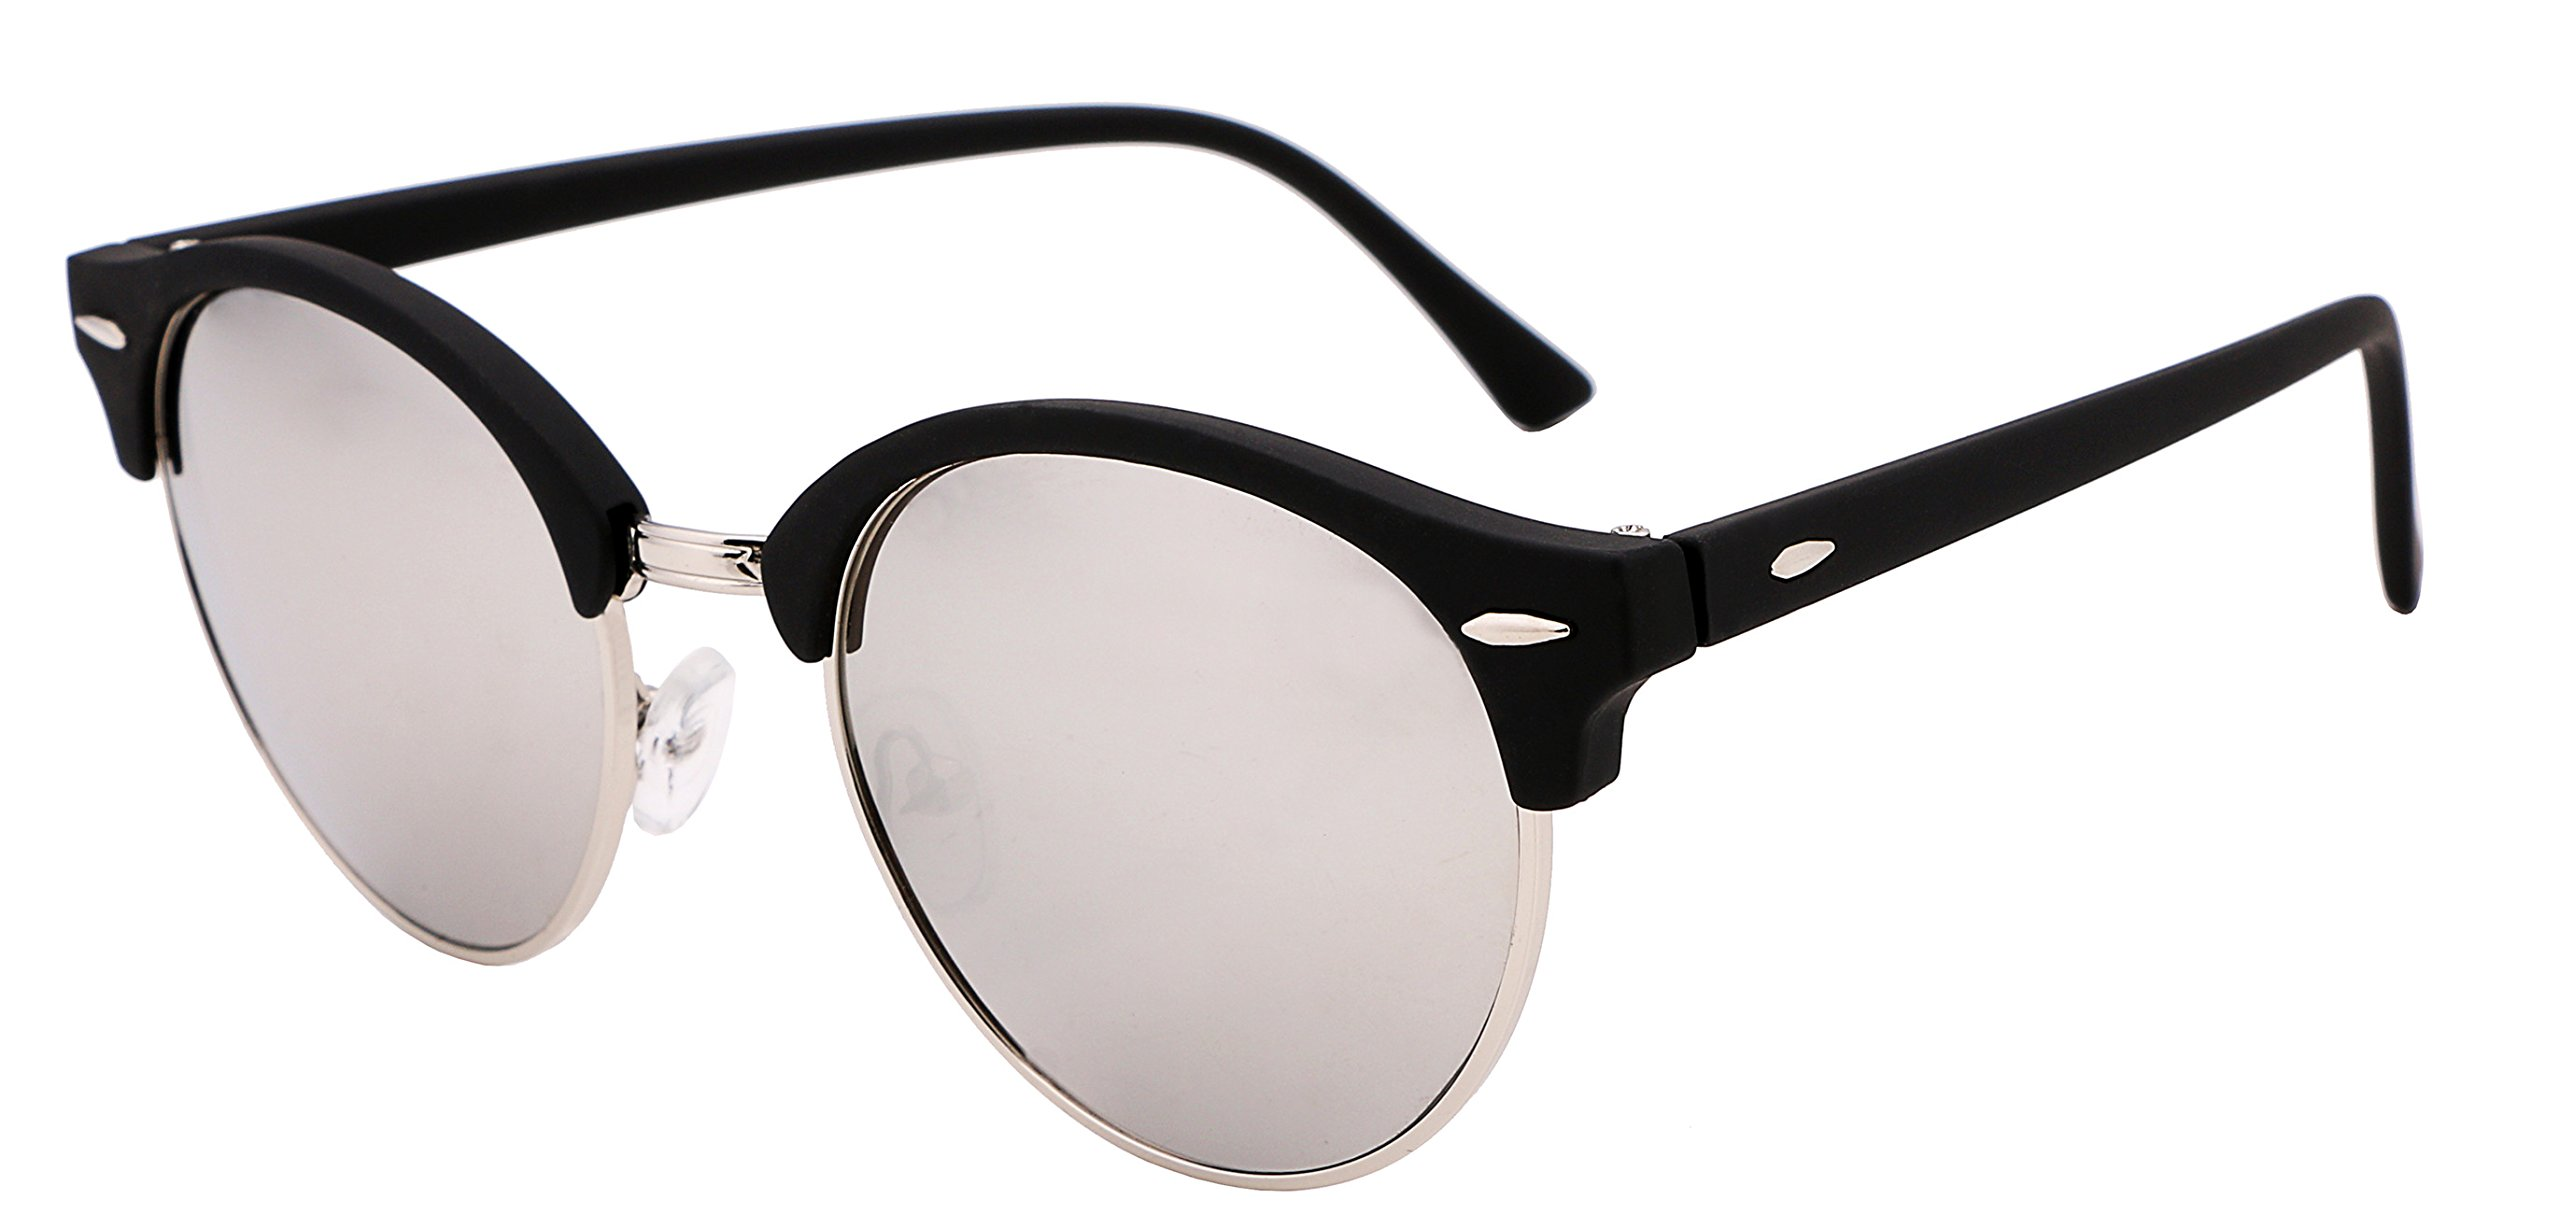 FEISEDY Classic Semi-rimless Round Frame Plastic Lens Sunglasses for Men Women B1882 by FEISEDY (Image #1)